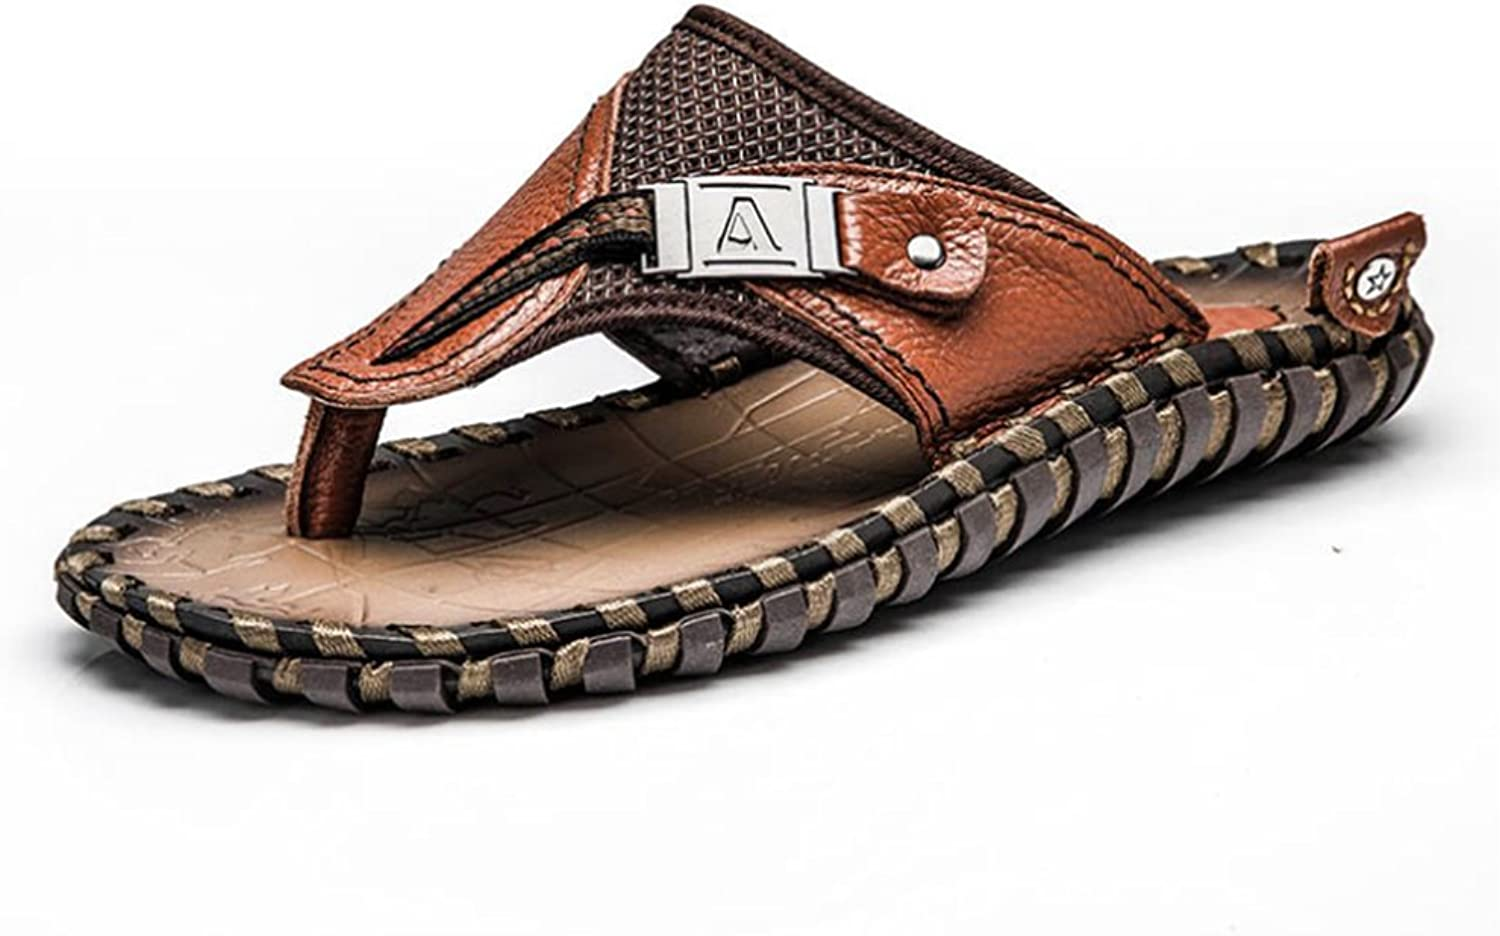 Sandals Men's Flip-Flop Thong With Arch Support Light Weight Beach Slippers